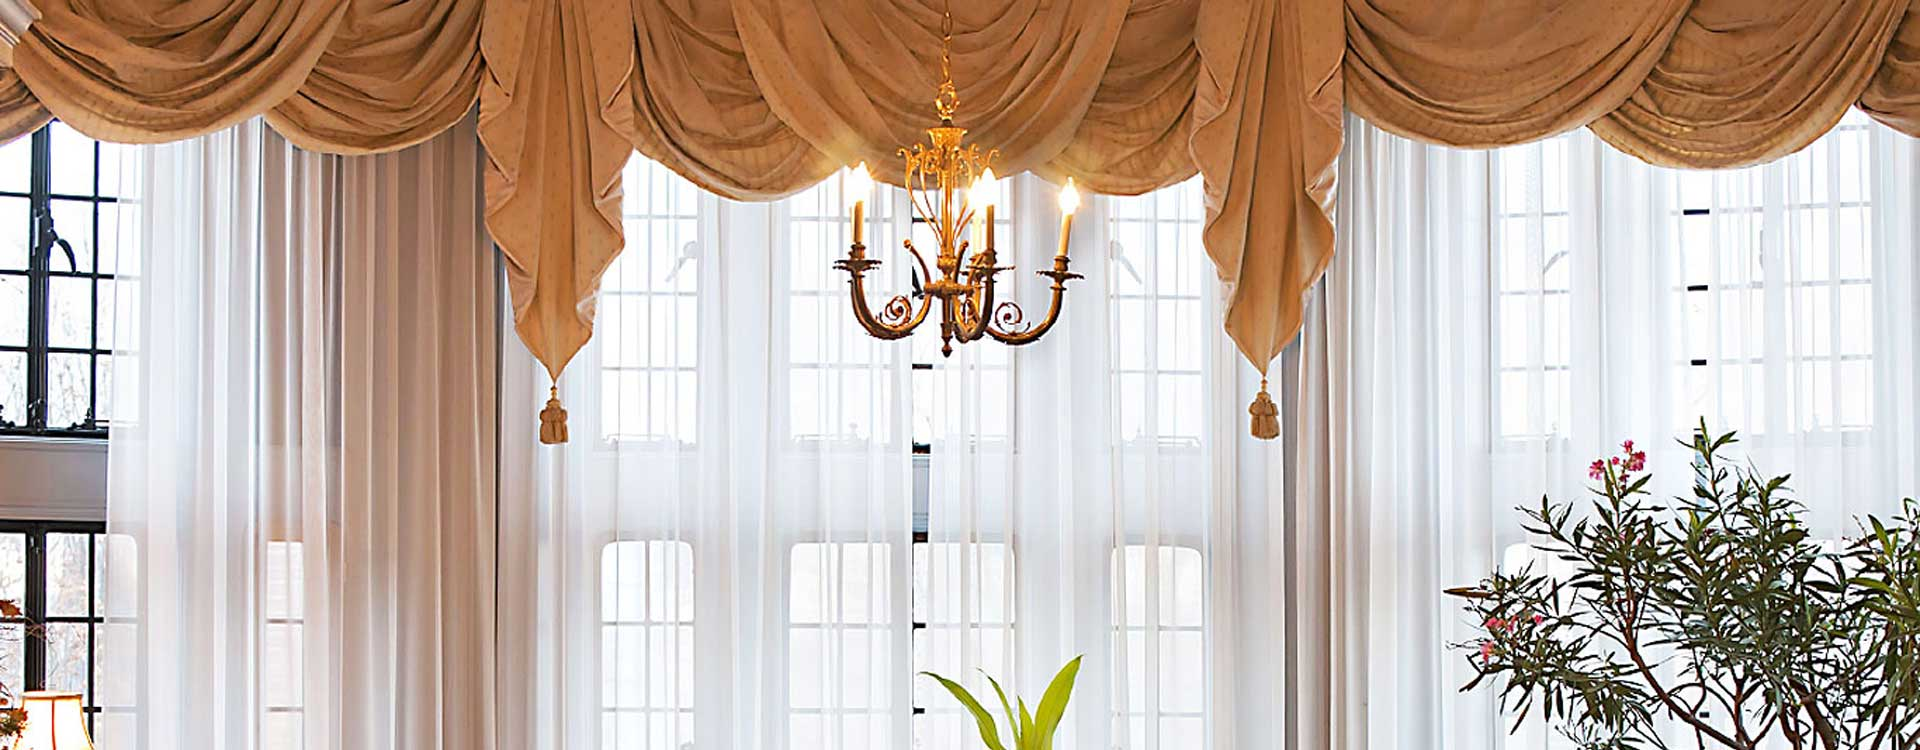 for swag curtains shades room blue swags windows drapes treatments valances lantern living and of shutters valance decorating sales large size window with blinds